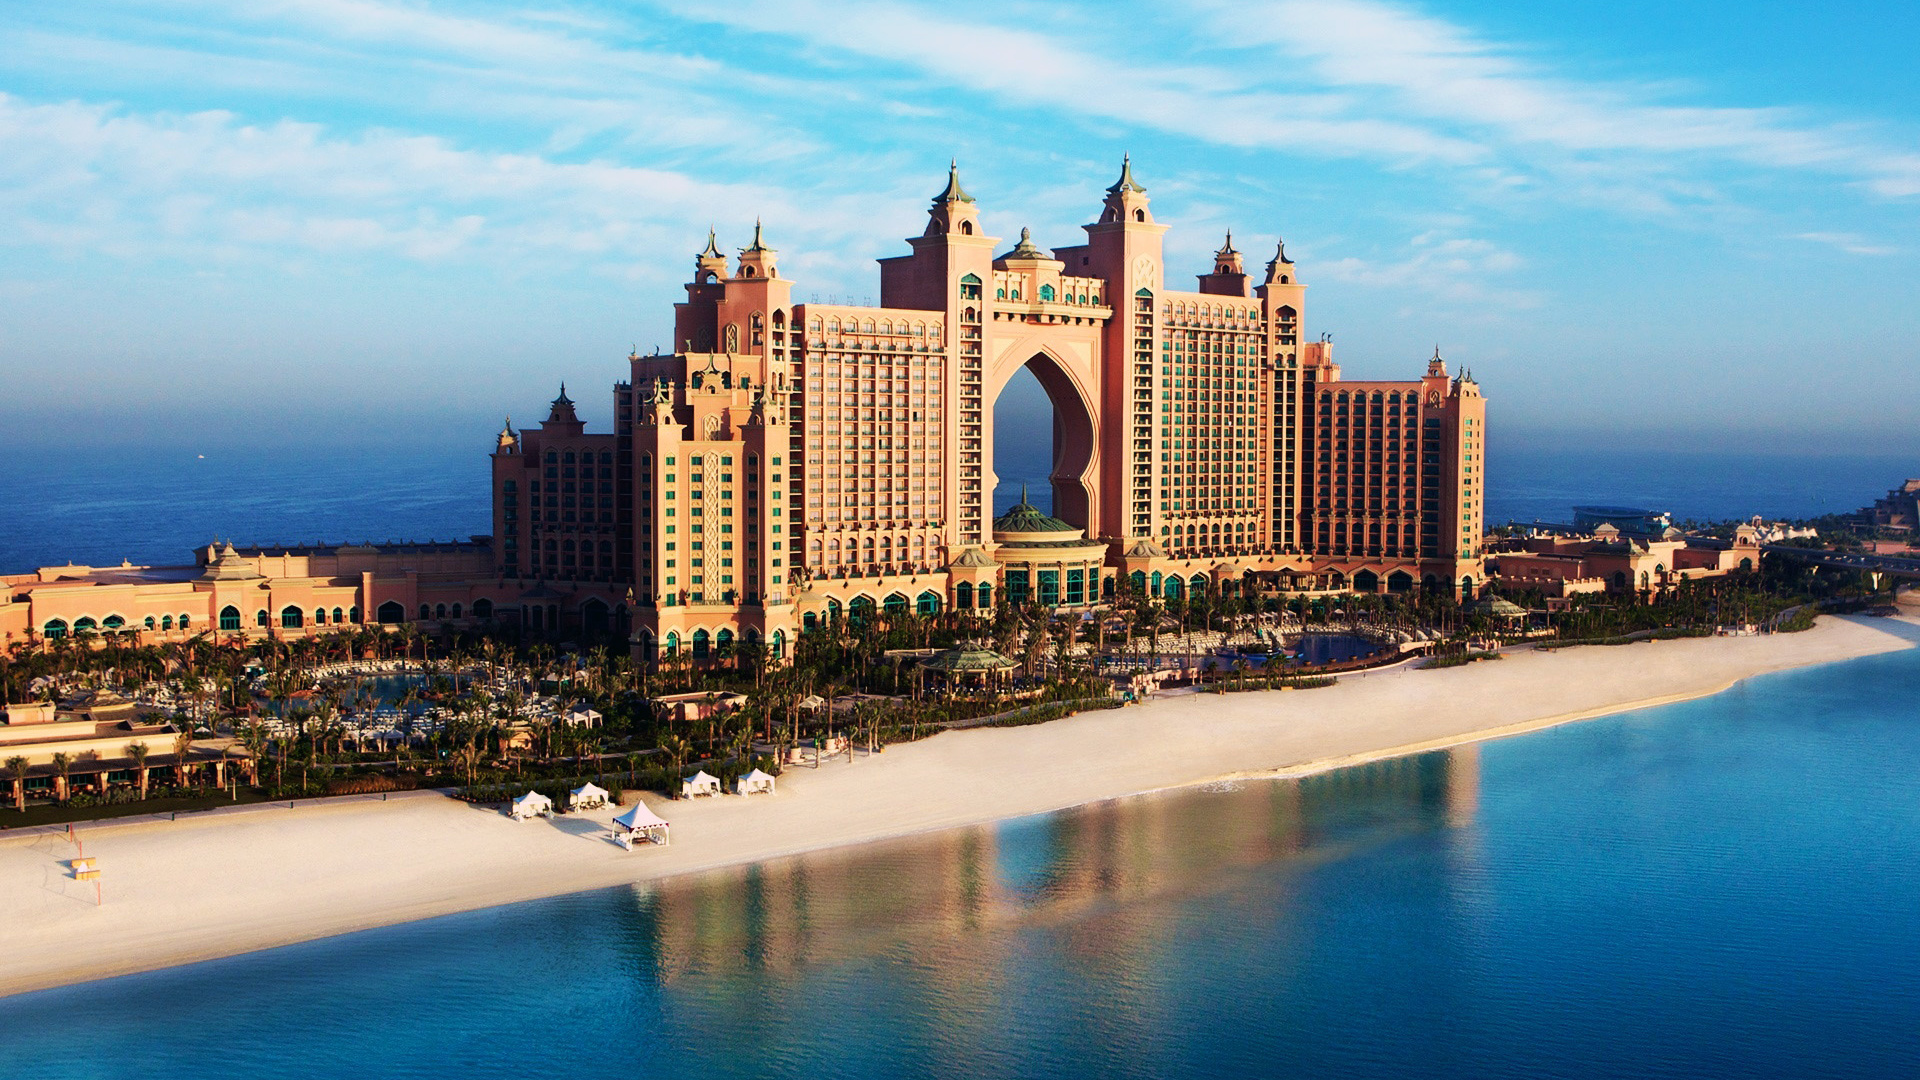 Great Wallpaper Macbook Dubai - the-wallpaper-of-atlantis-majestic-dubai-hotel-situated-on-palm-jumeirah-1920x1080-586  Trends_30784.jpg